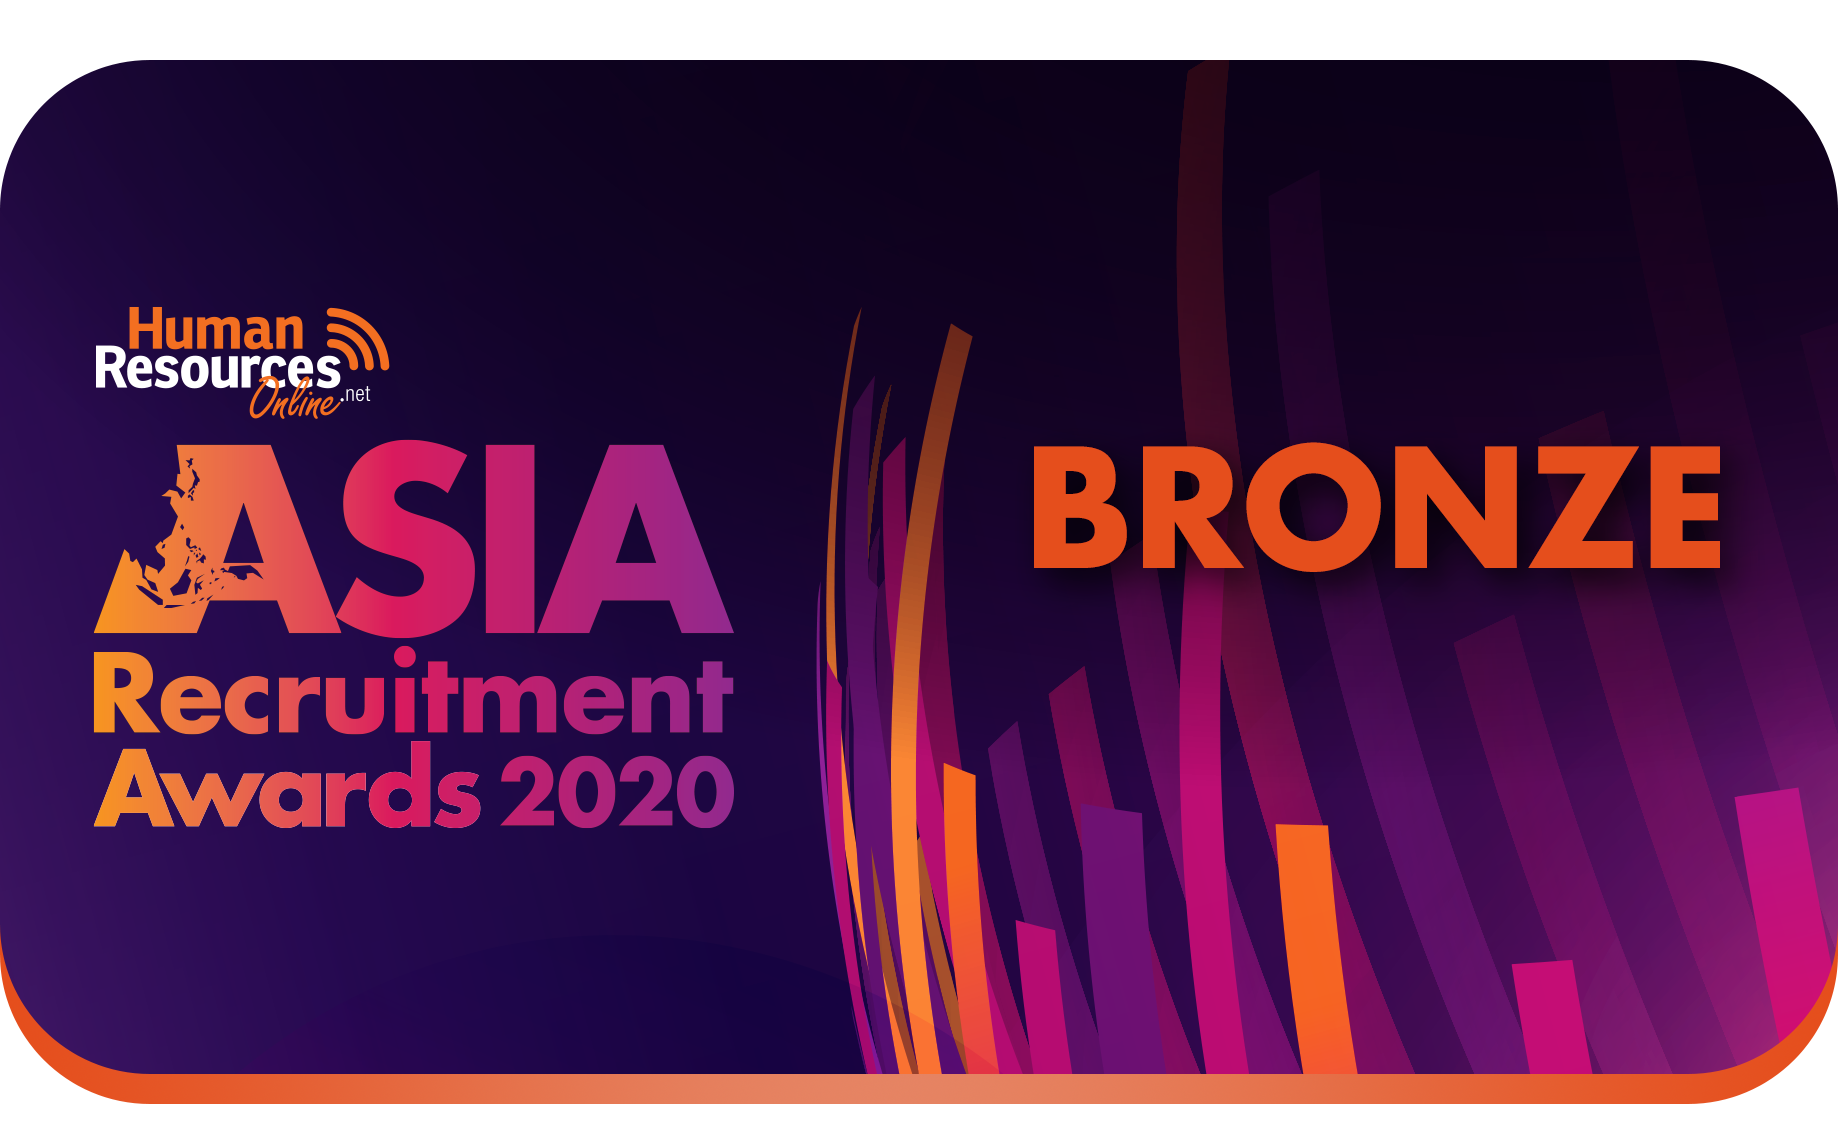 LLM wins Bronze for Best Specialist Recruitment Company in the Asia Recruitment Awards 2020!